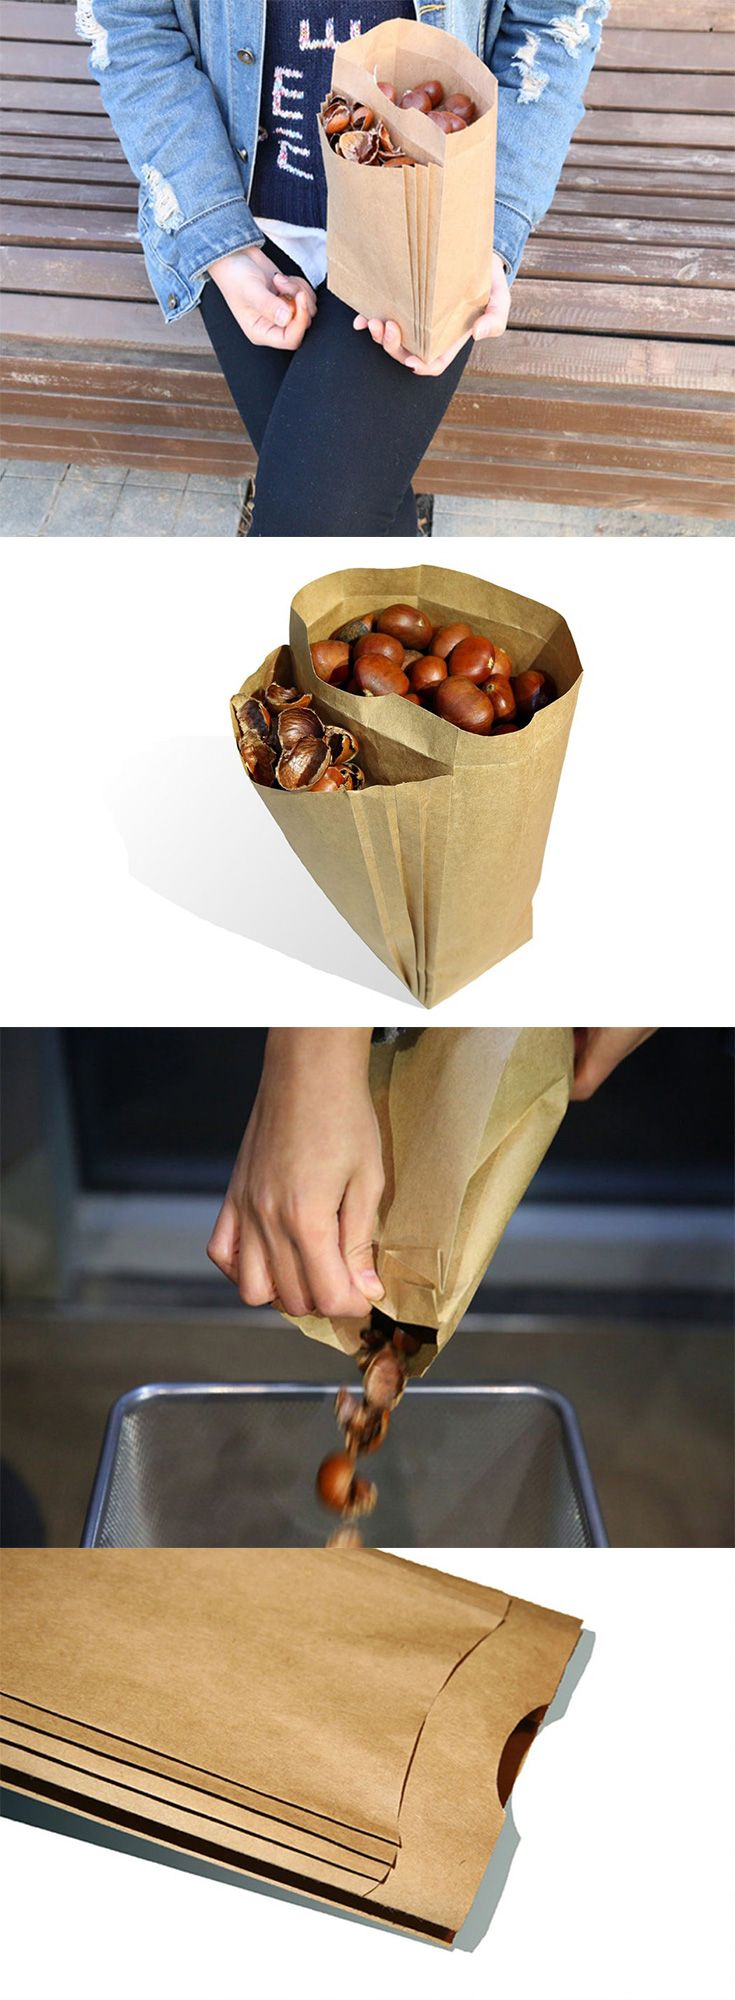 The cleverly designed 'Double Food Bag' addresses the problem of where to dispose of your leftover chestnut shells, rather than seek out a garbage bin or toss them  in the same bag, there's an additional pouch built in just for the waste... READ MORE at Yanko Design !